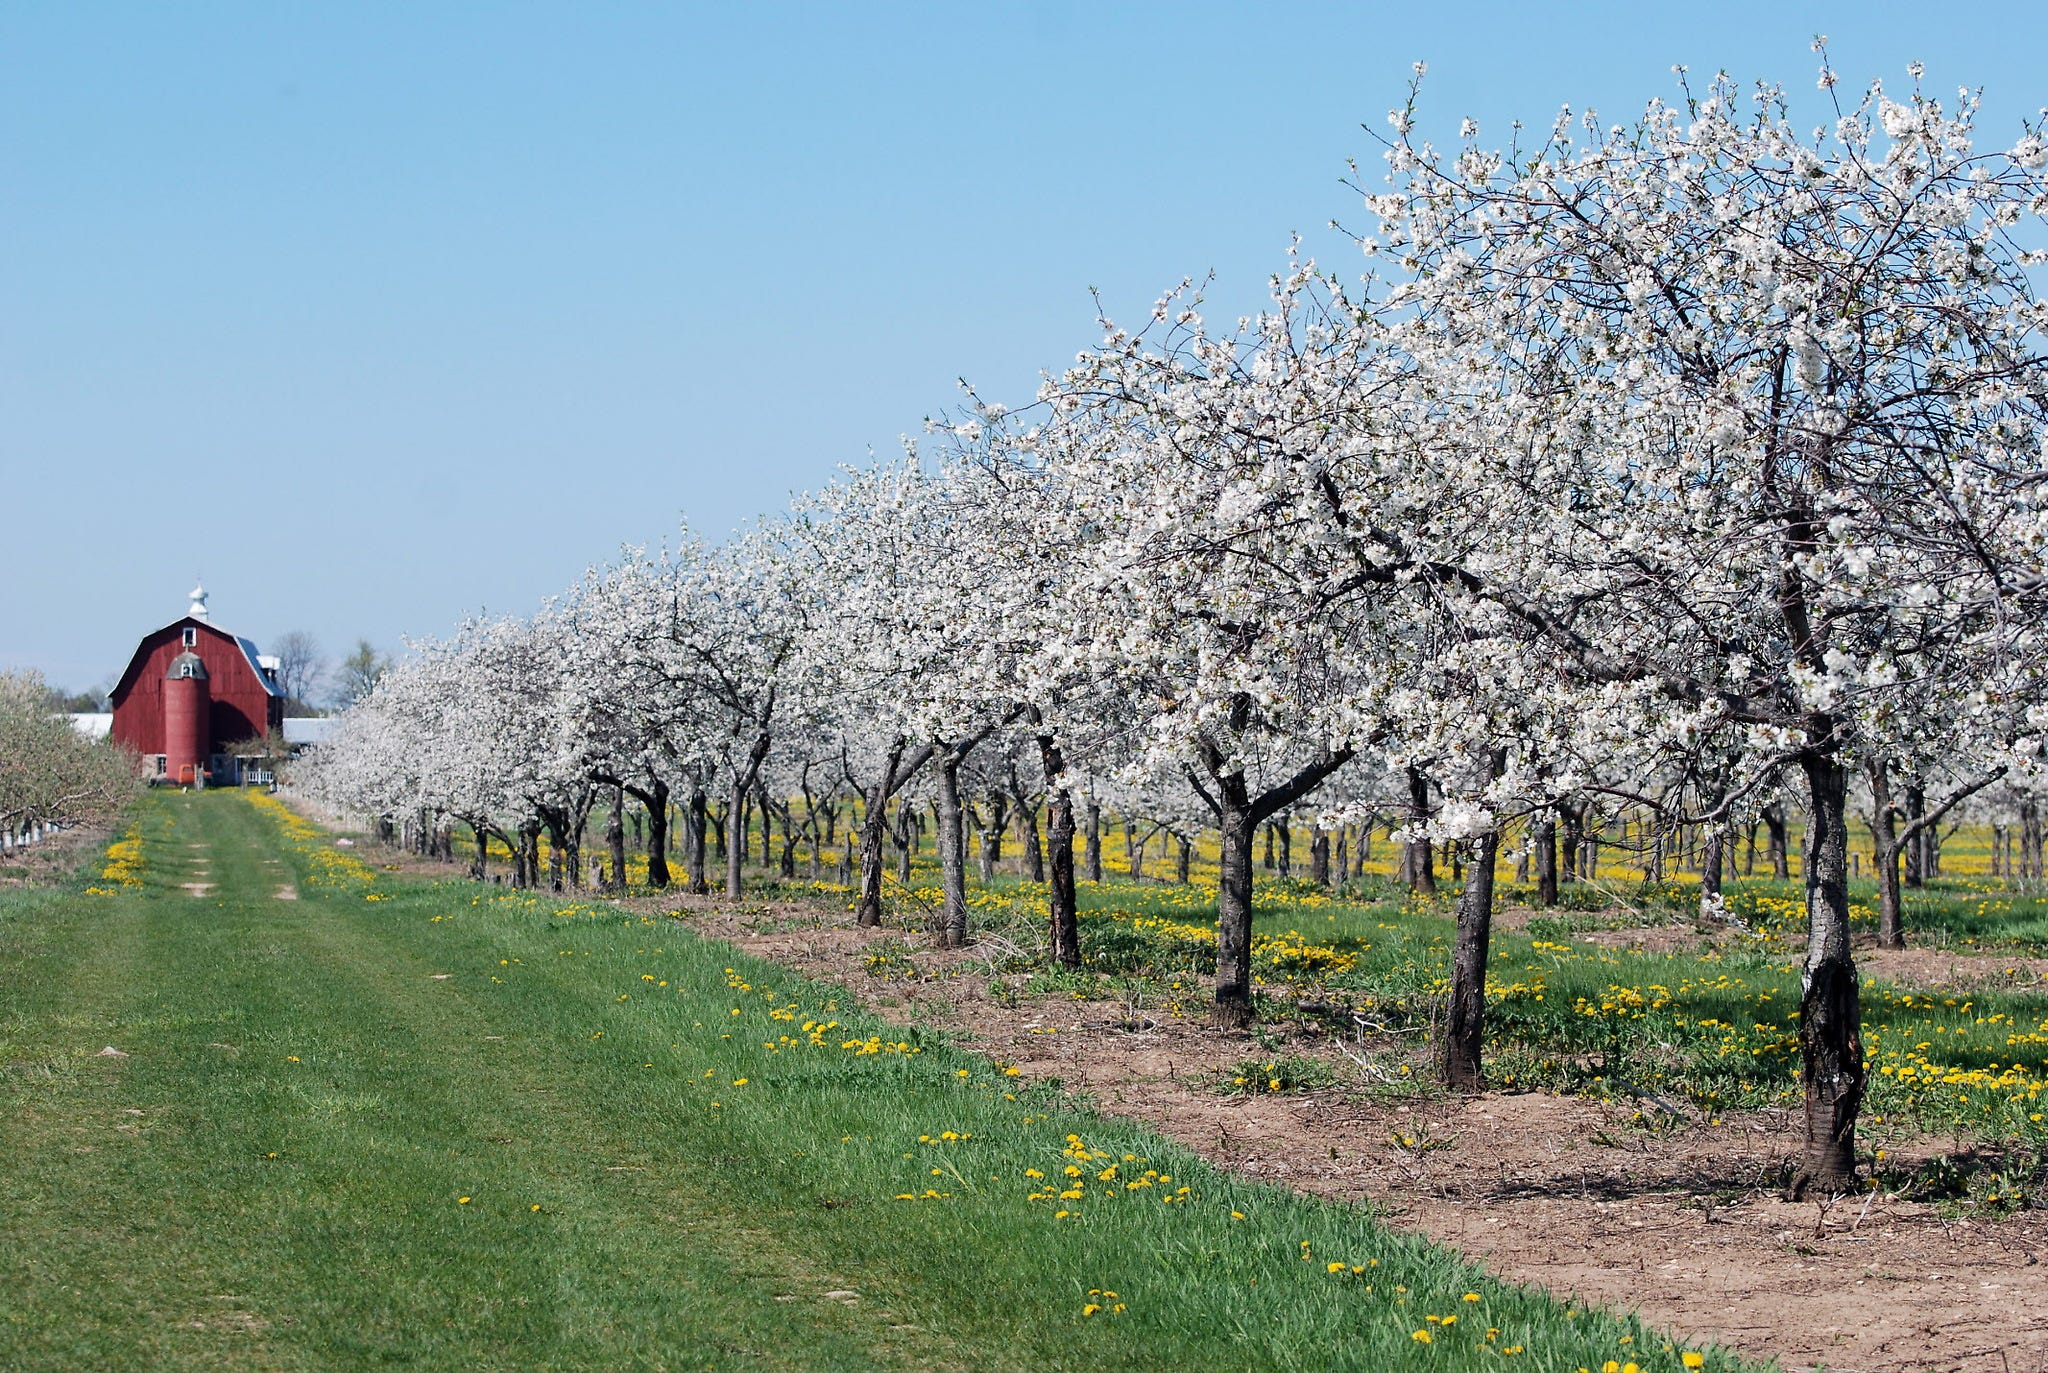 & Door County blossoms with things to do in spring pezcame.com